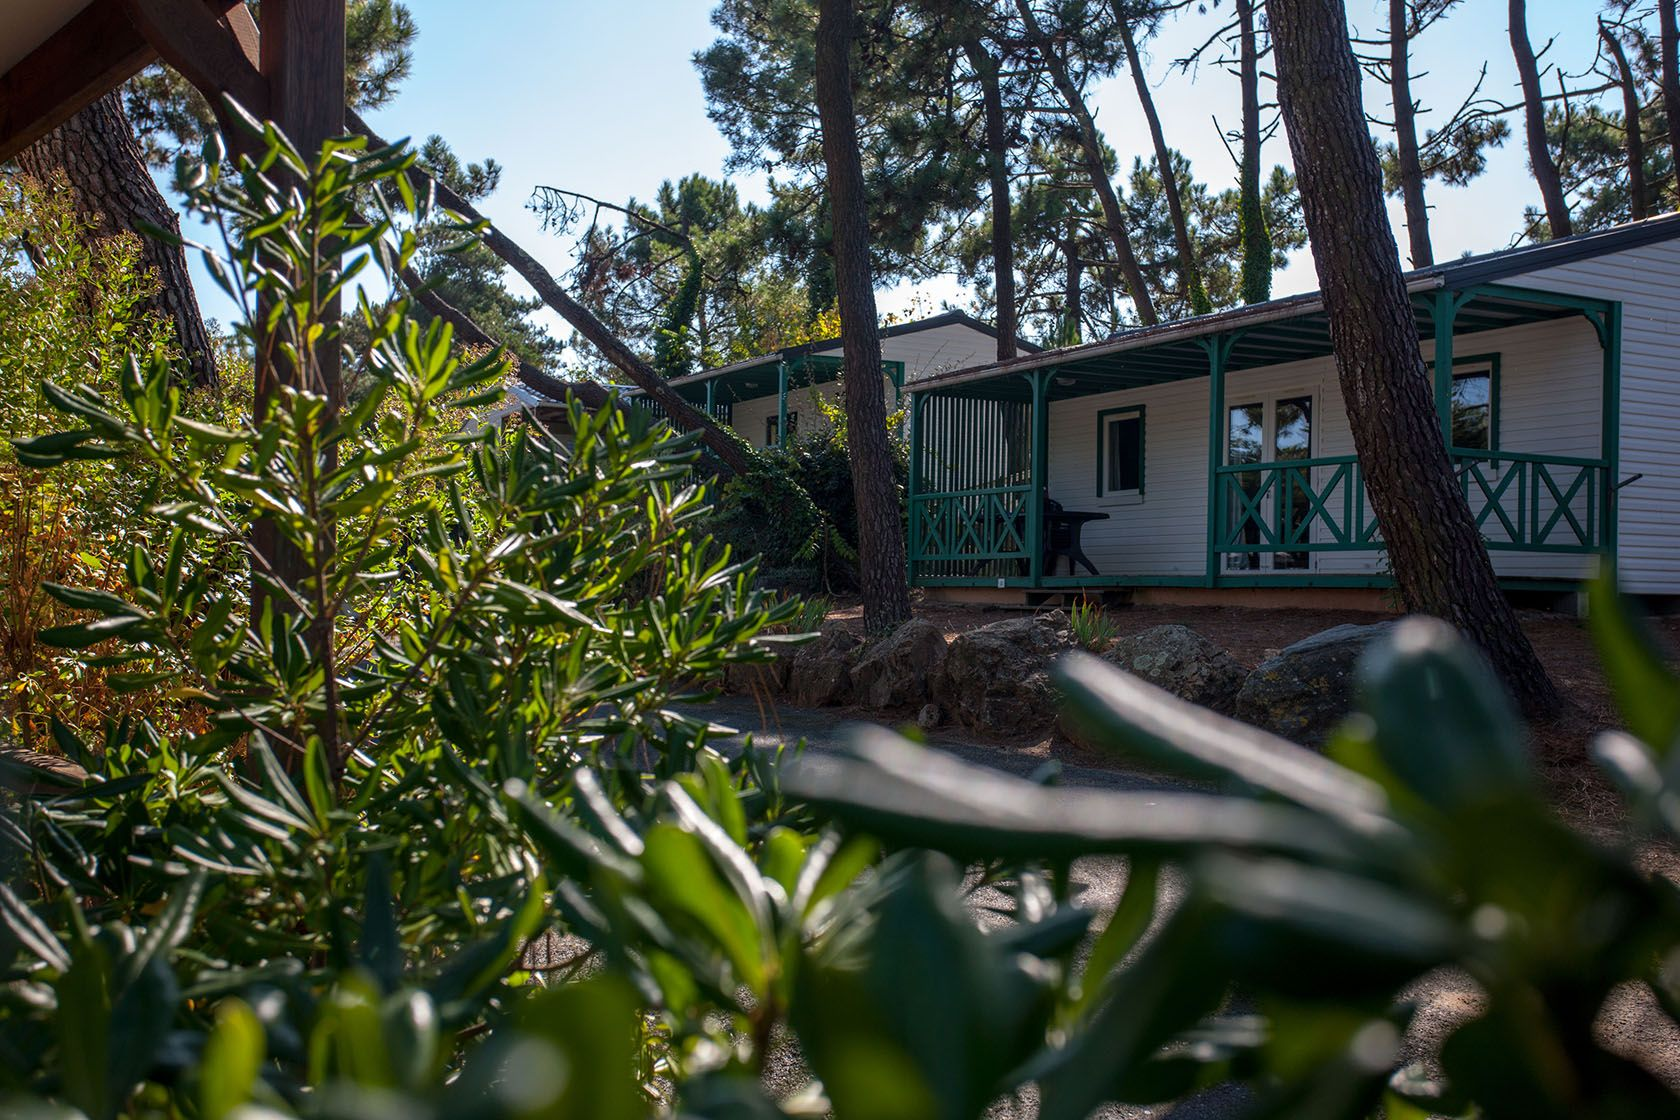 Offres spéciales du Camping La Siesta, camping 4 étoiles avec espace aquatique, location emplacements, mobil homes, chalets, appartements, vente de mobil homes à La Faute sur Mer en Vendée